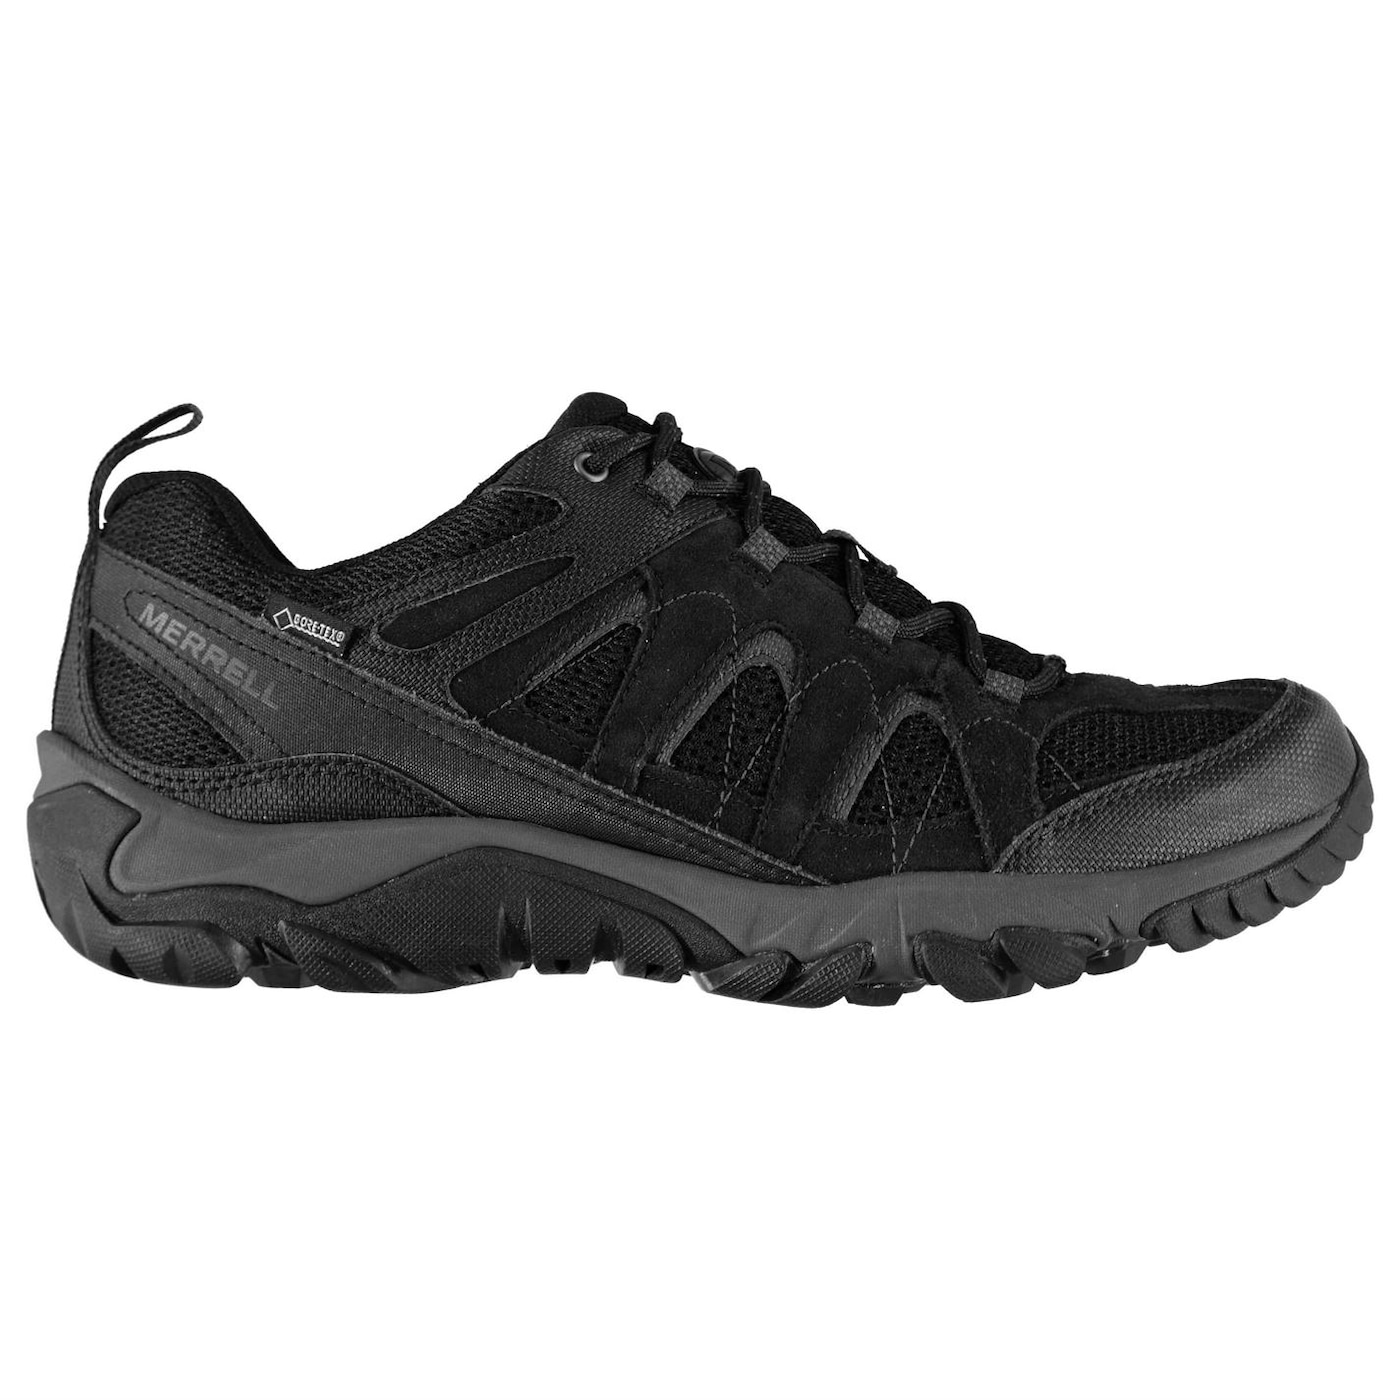 Merrell Outmost Vent Gore Tex Walking Shoes Mens